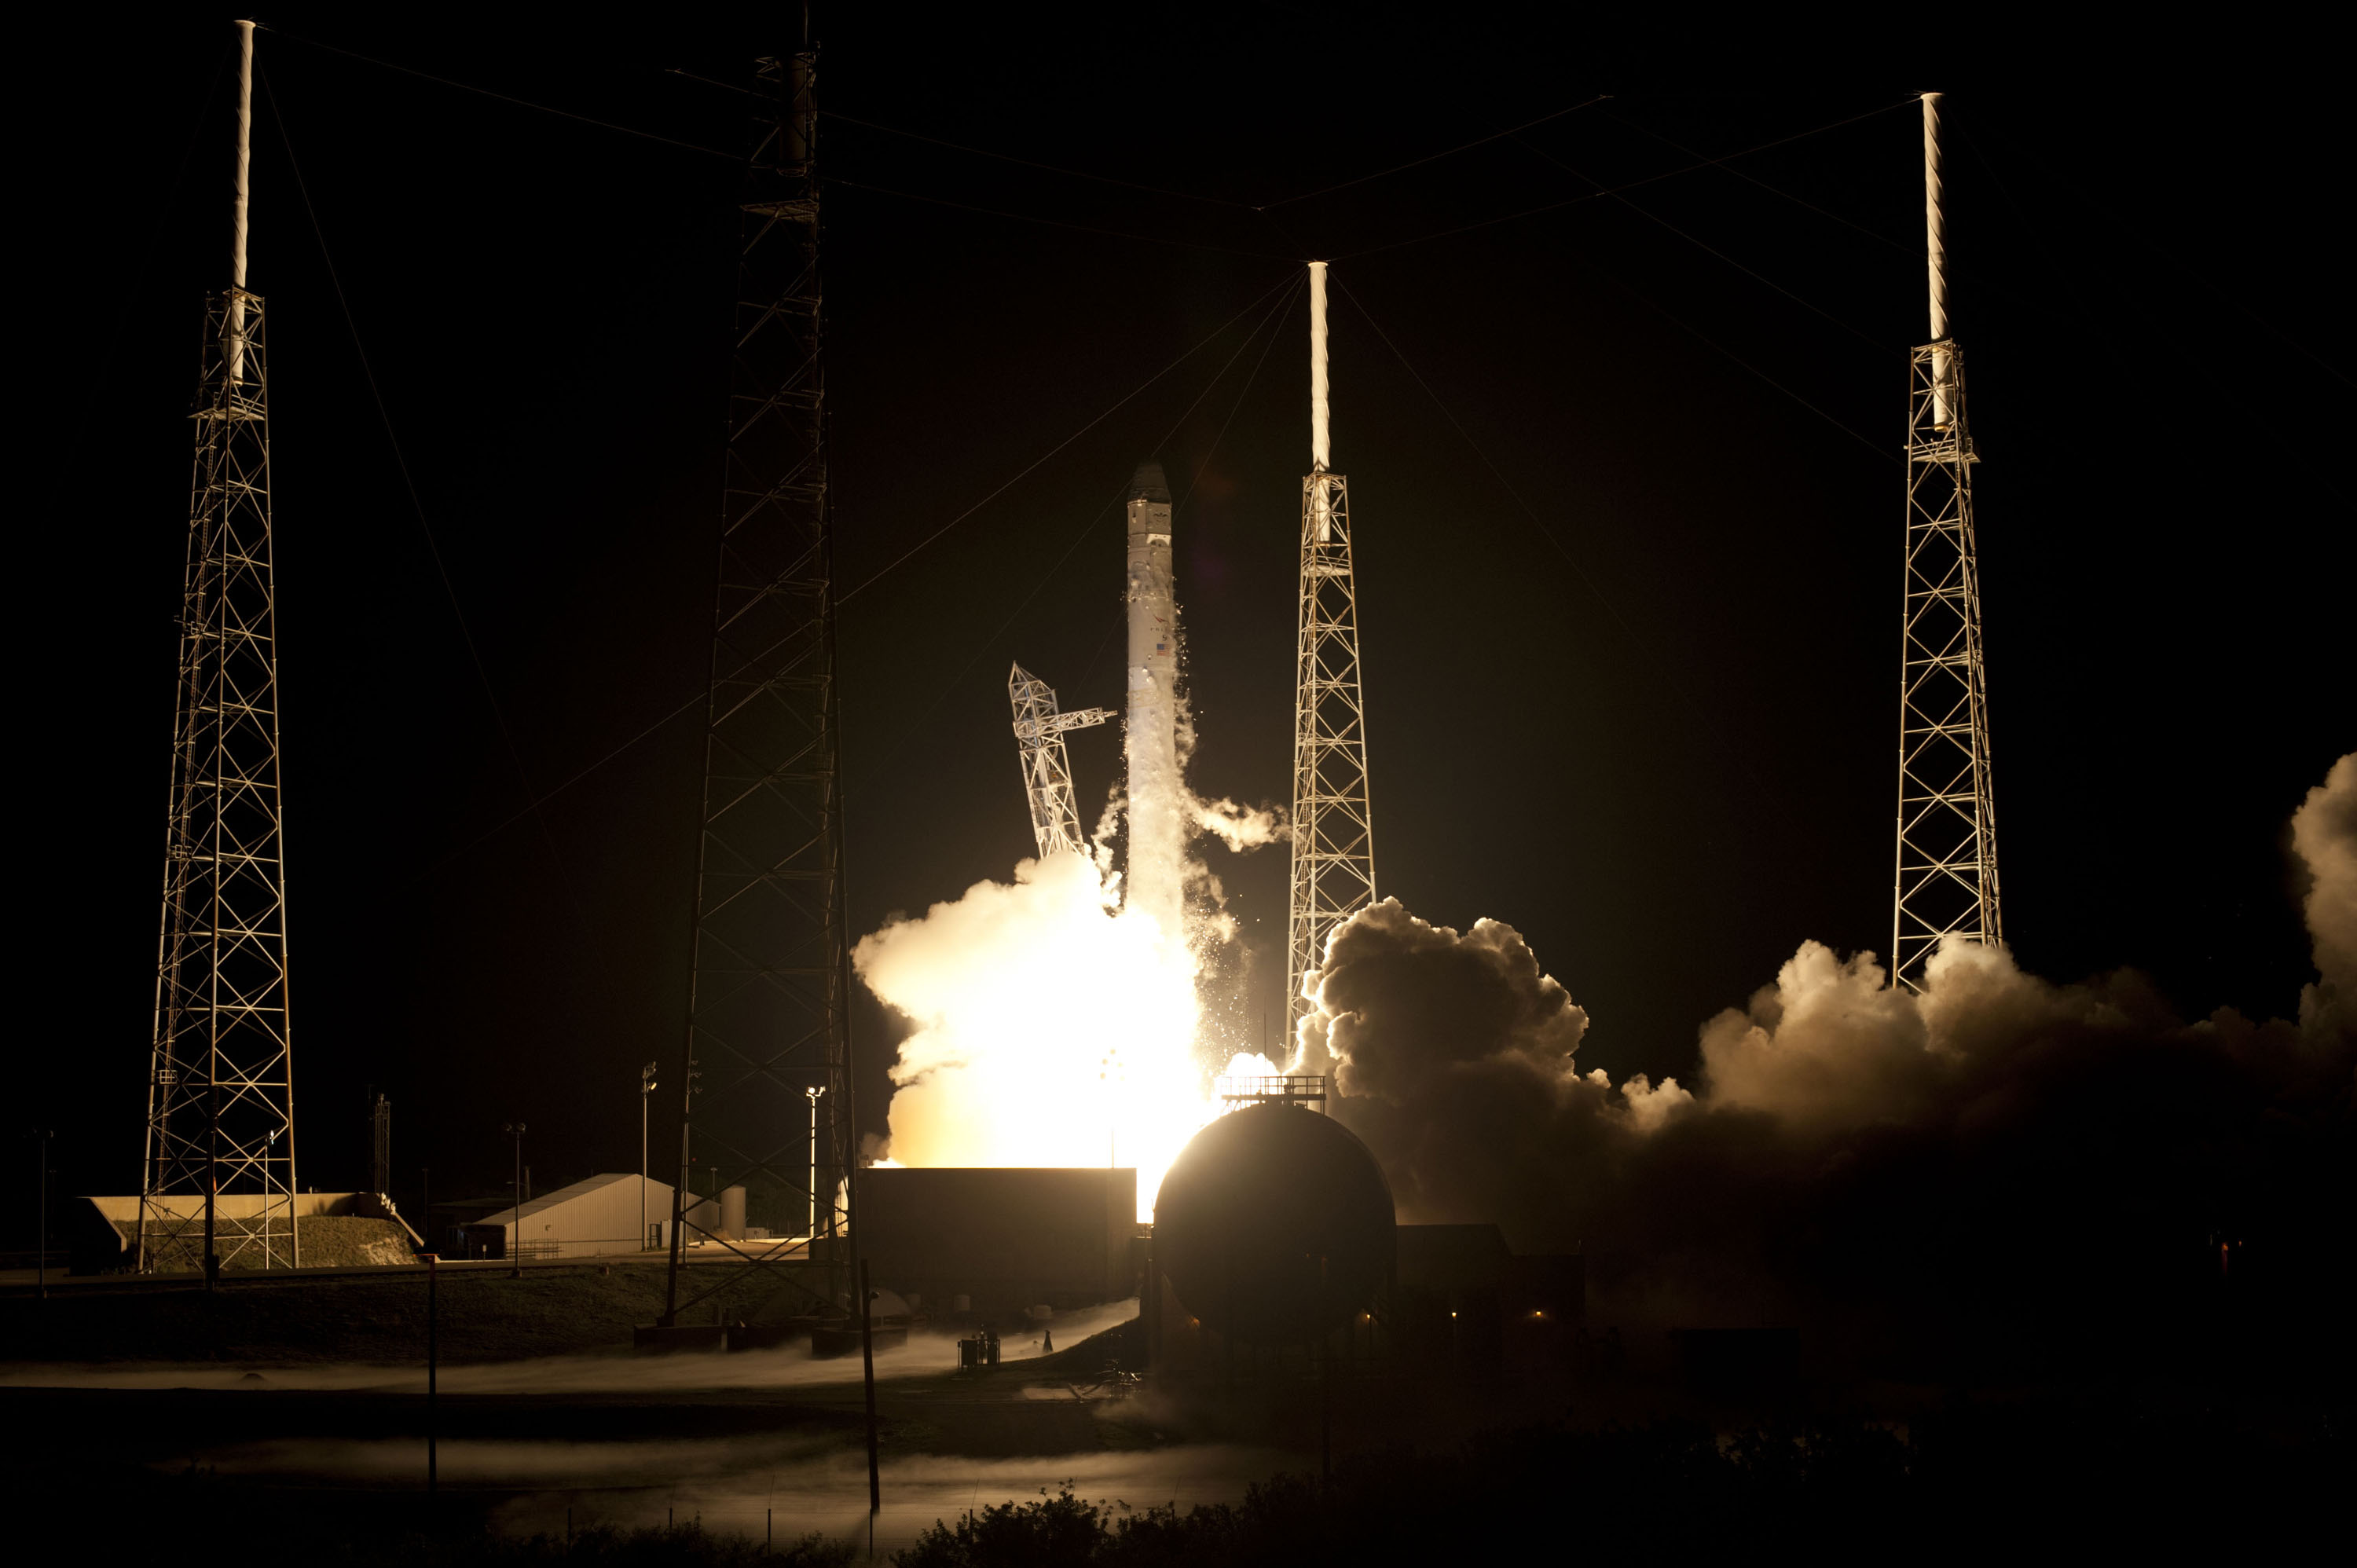 spacex launches rocket - HD3000×1996